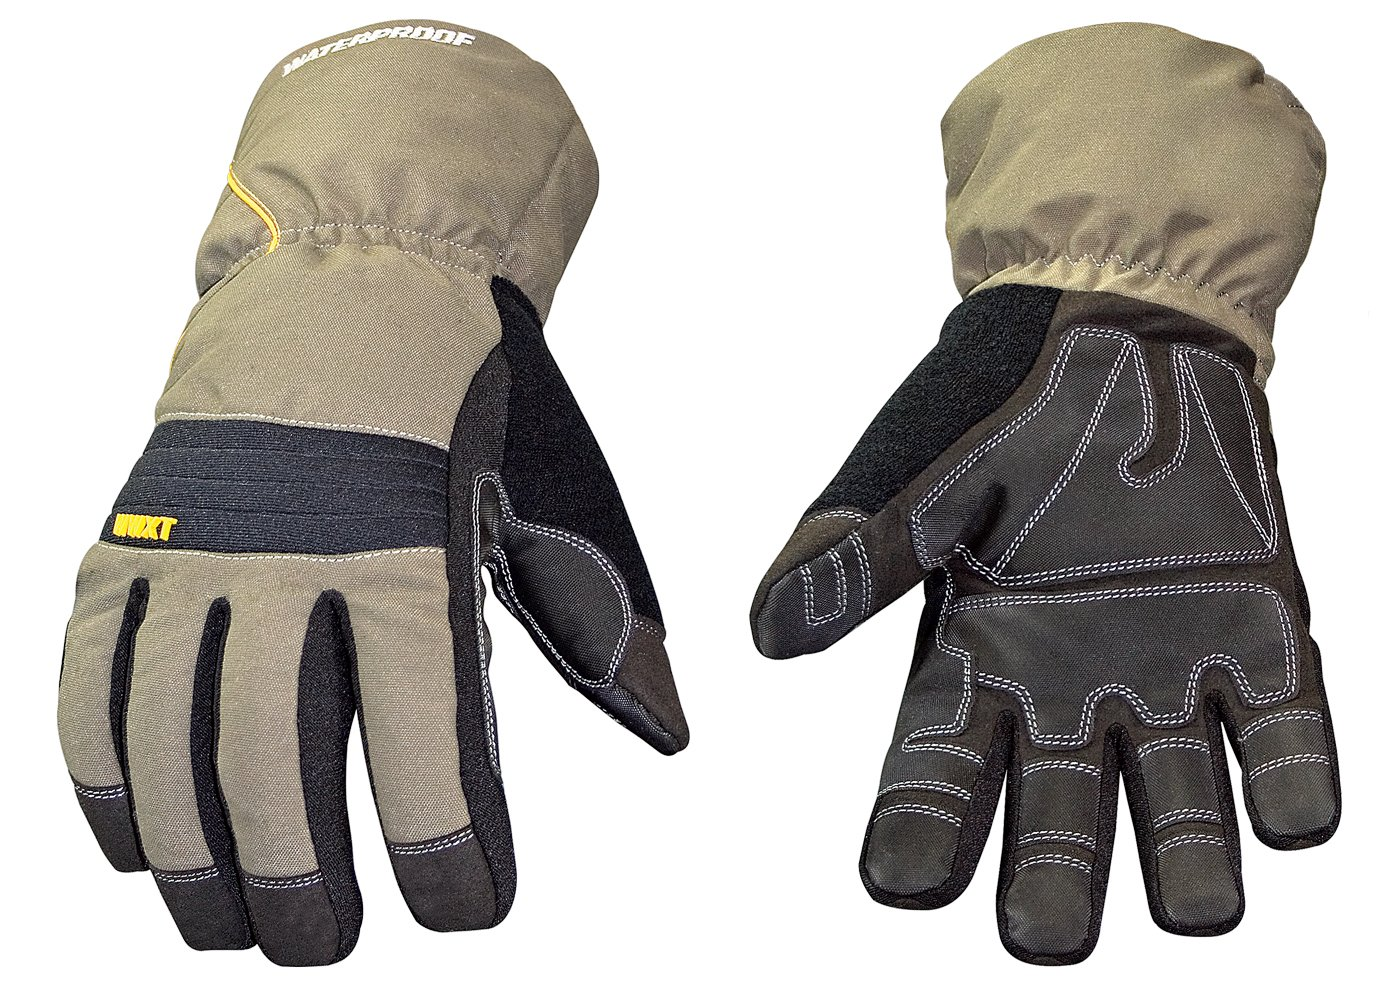 Youngstown Glove Waterproof Winter Thinsulate Waterproof Glove